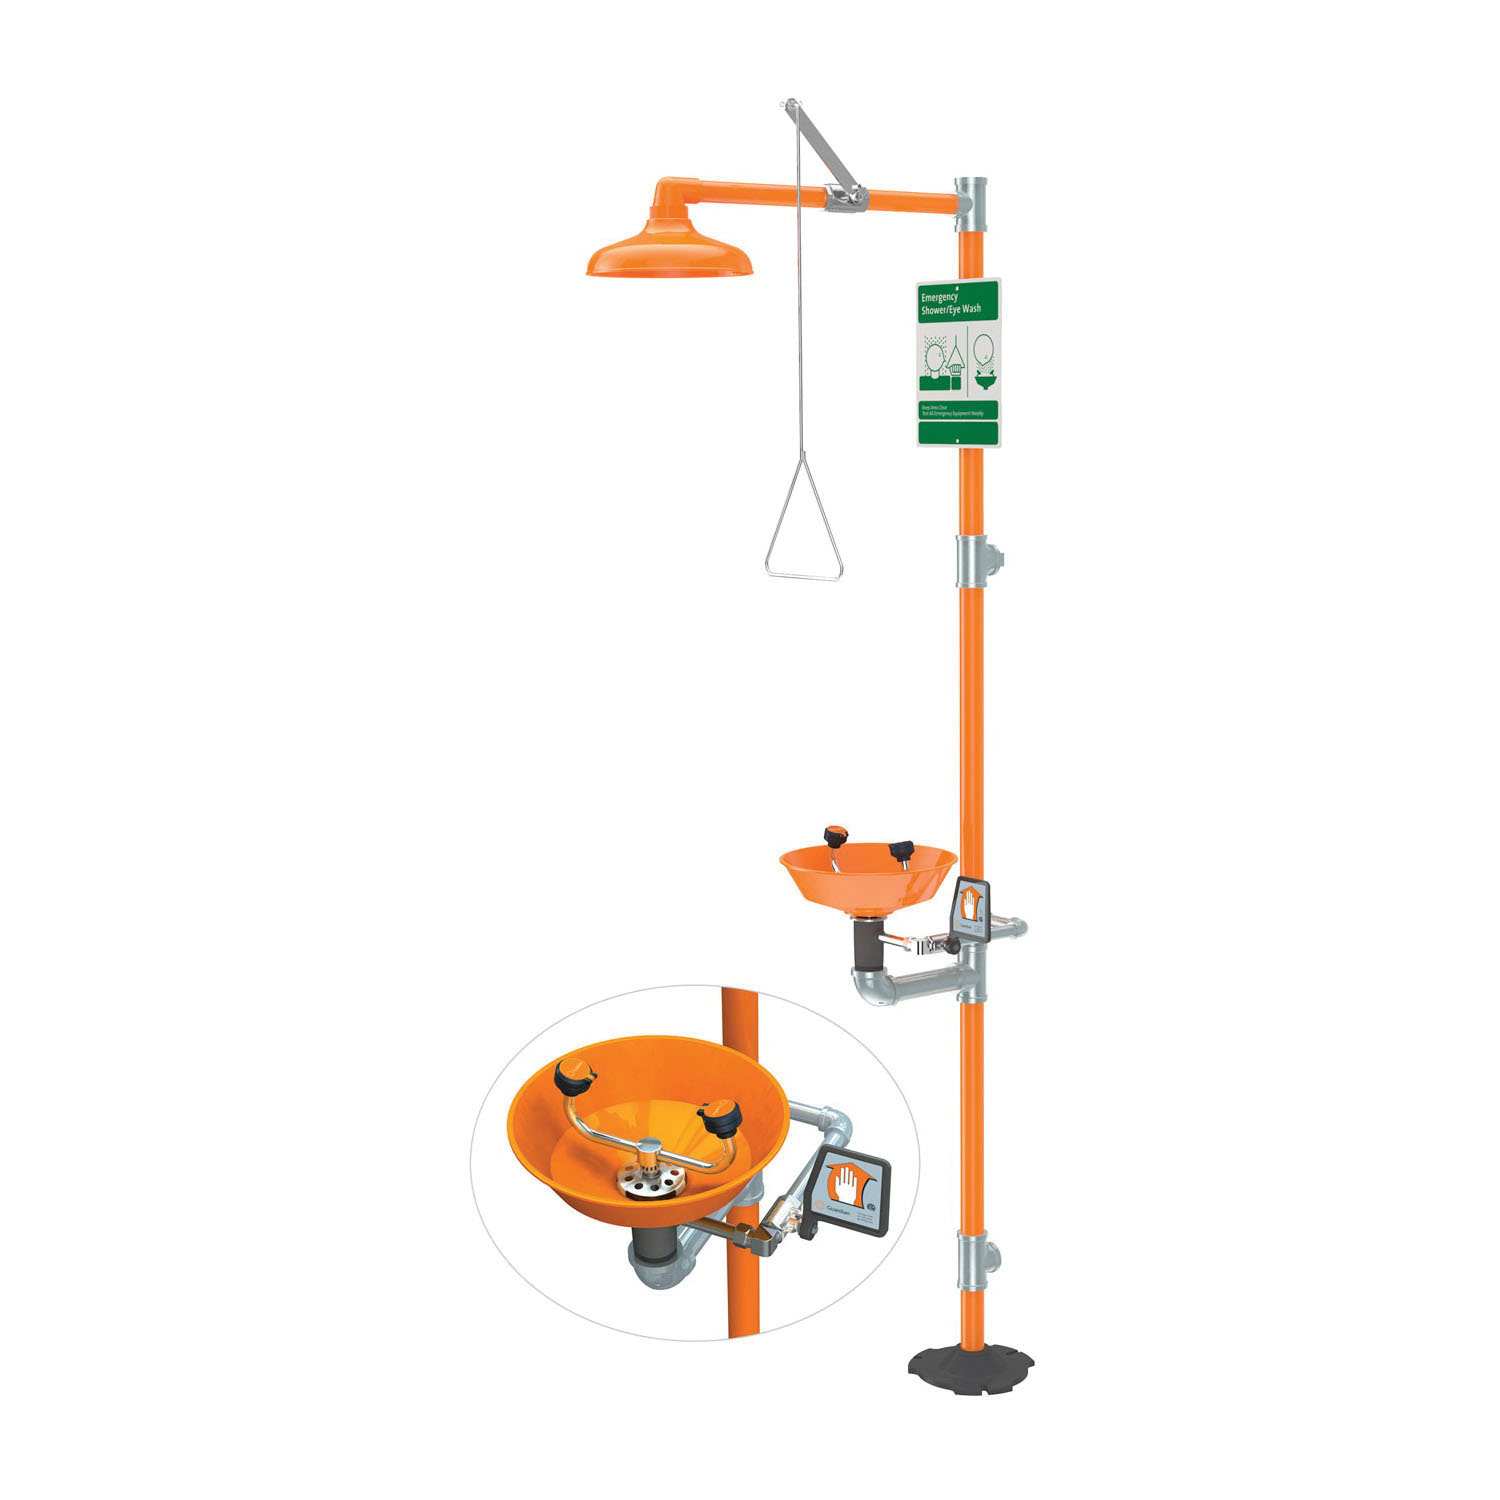 Guardian G1902P Combination Eyewash and Shower Safety Unit, ABS Plastic Eyewash Bowl, ABS Plastic Shower Head, Floor Mounting, Pull Rod Handle Operation, Specifications Met: ANSI Z358.1-2014, cUPC 8116